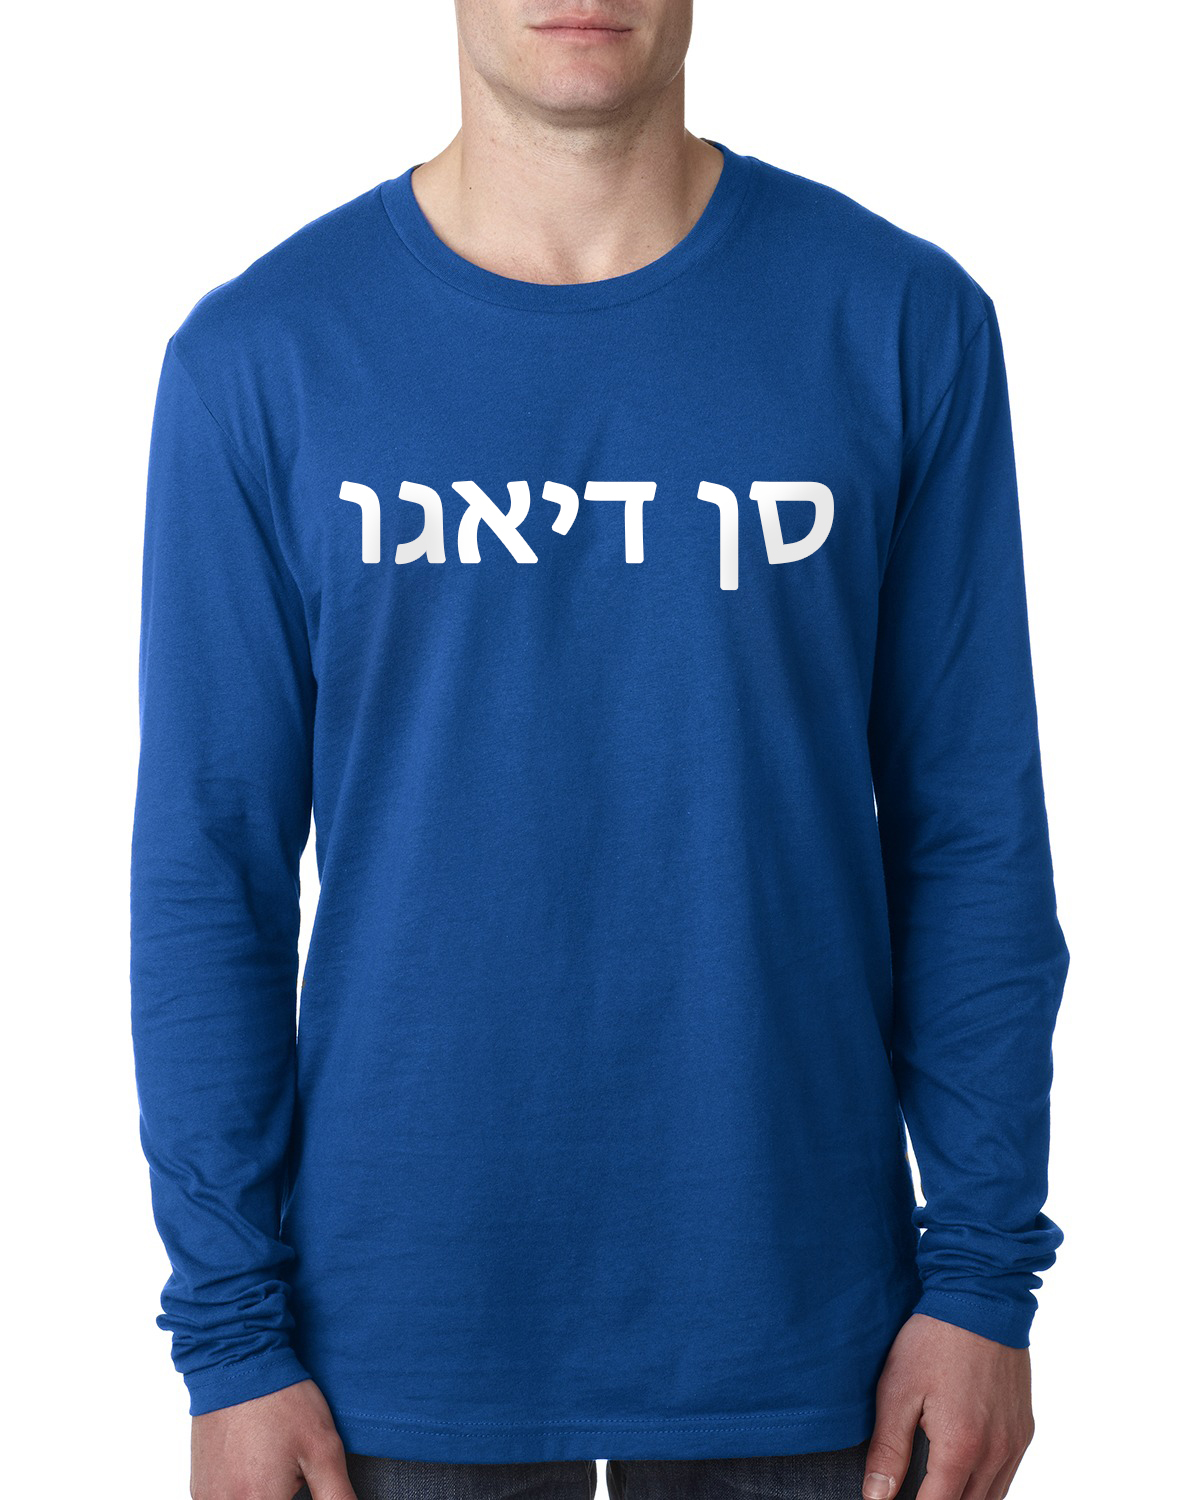 USD longsleeve-hebrew.jpg